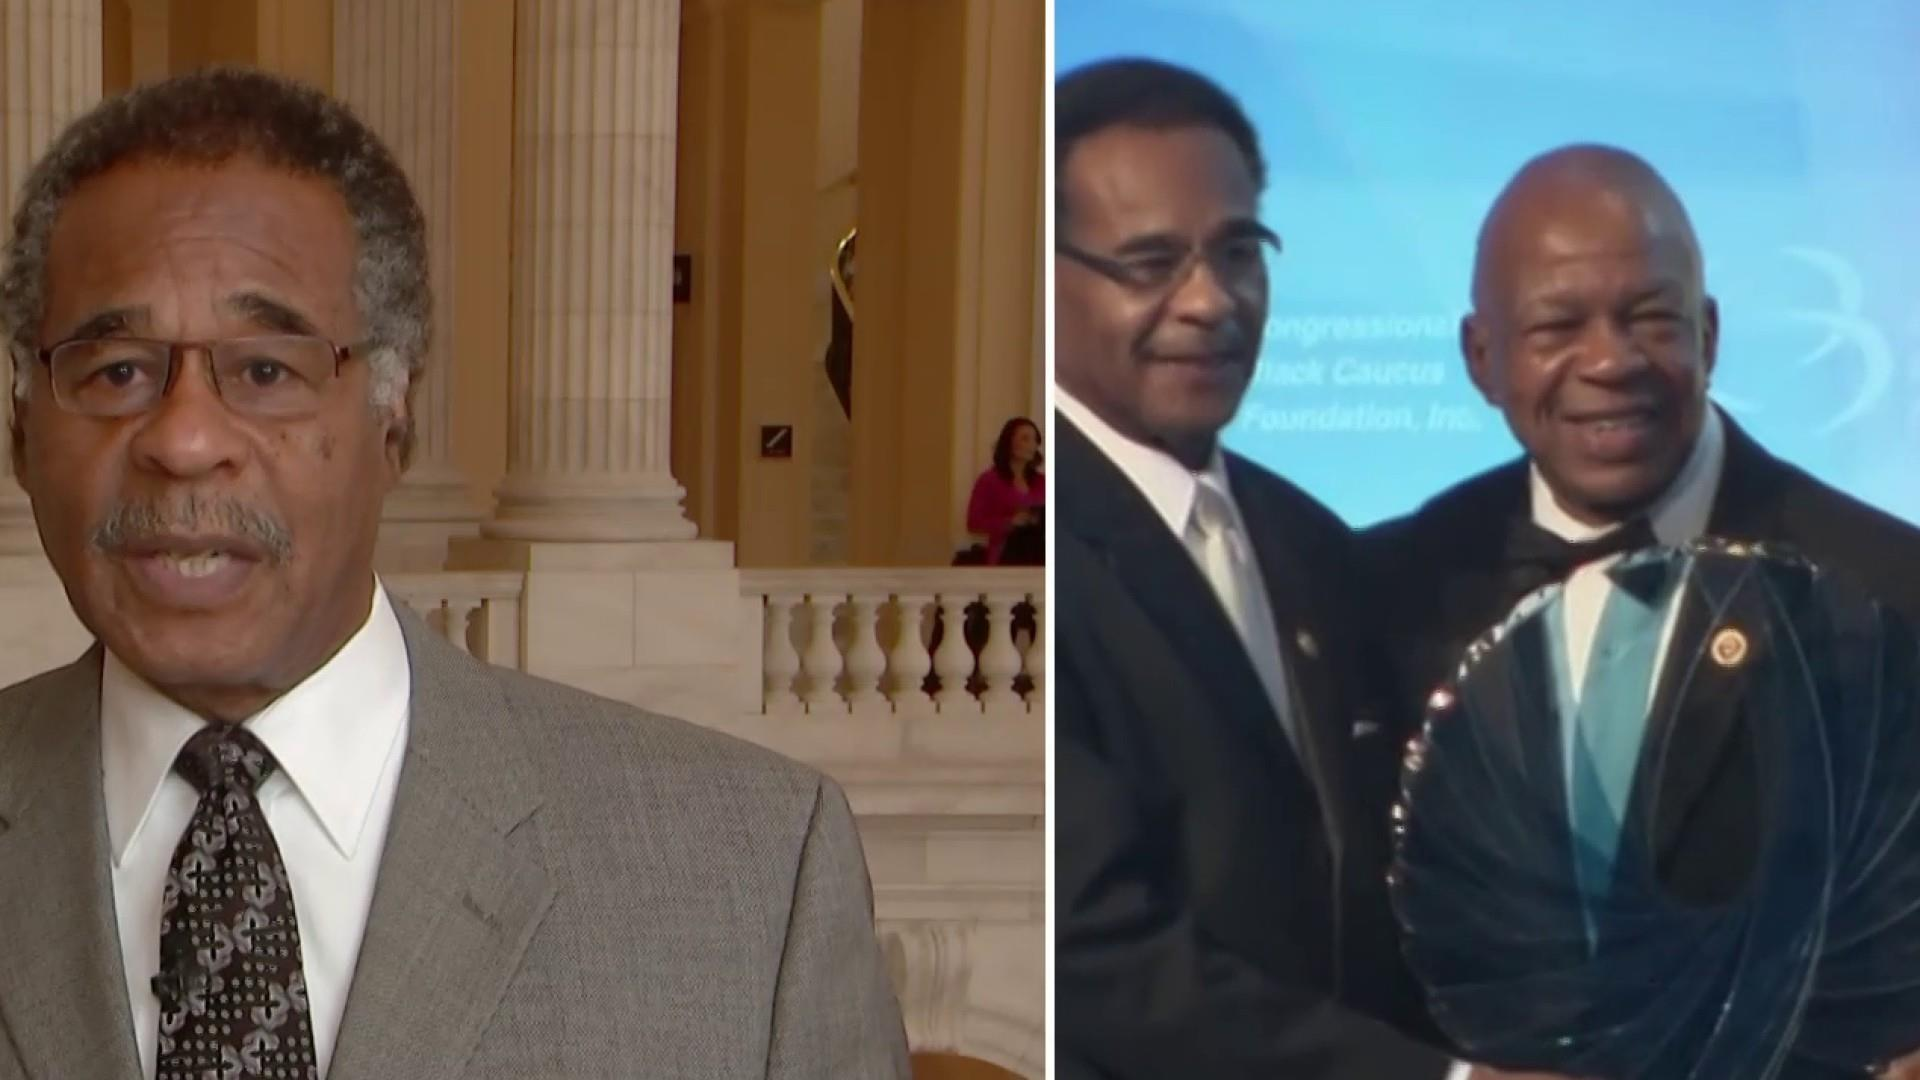 Rep. Cleaver: Cummings' life was 'a lesson for all of America'